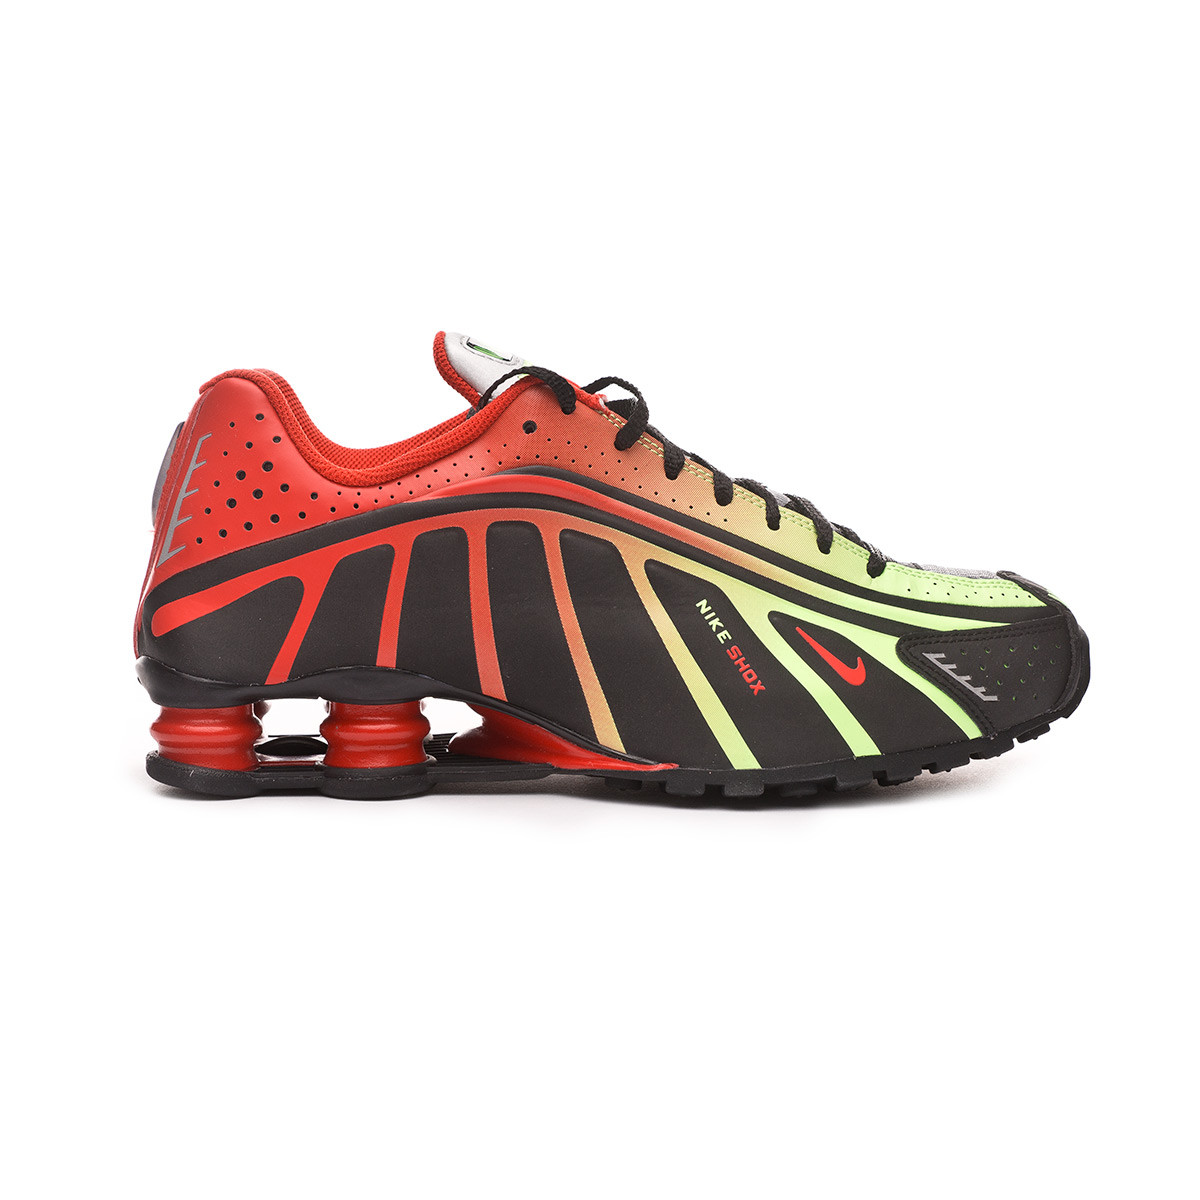 Zapatilla Shox R4 Neymar Jr Black-Challenge red-Metallic silver